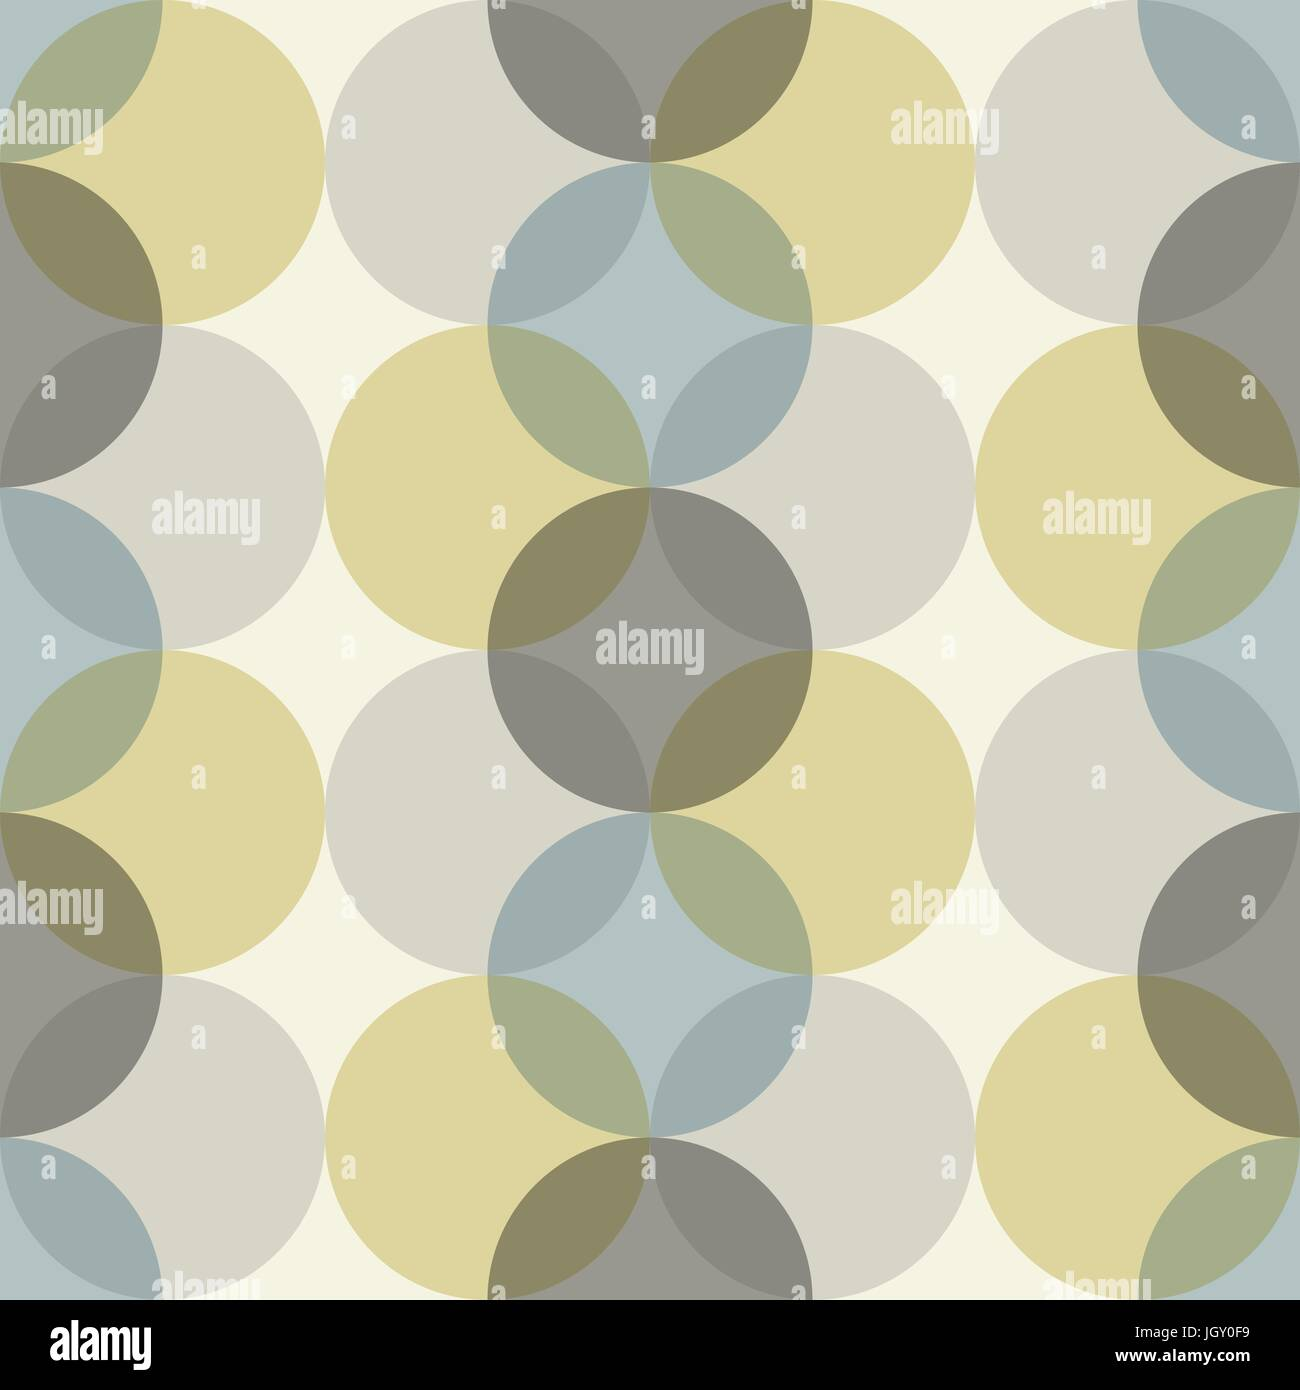 Wallpaper Pattern 1950s High Resolution Stock Photography And Images Alamy